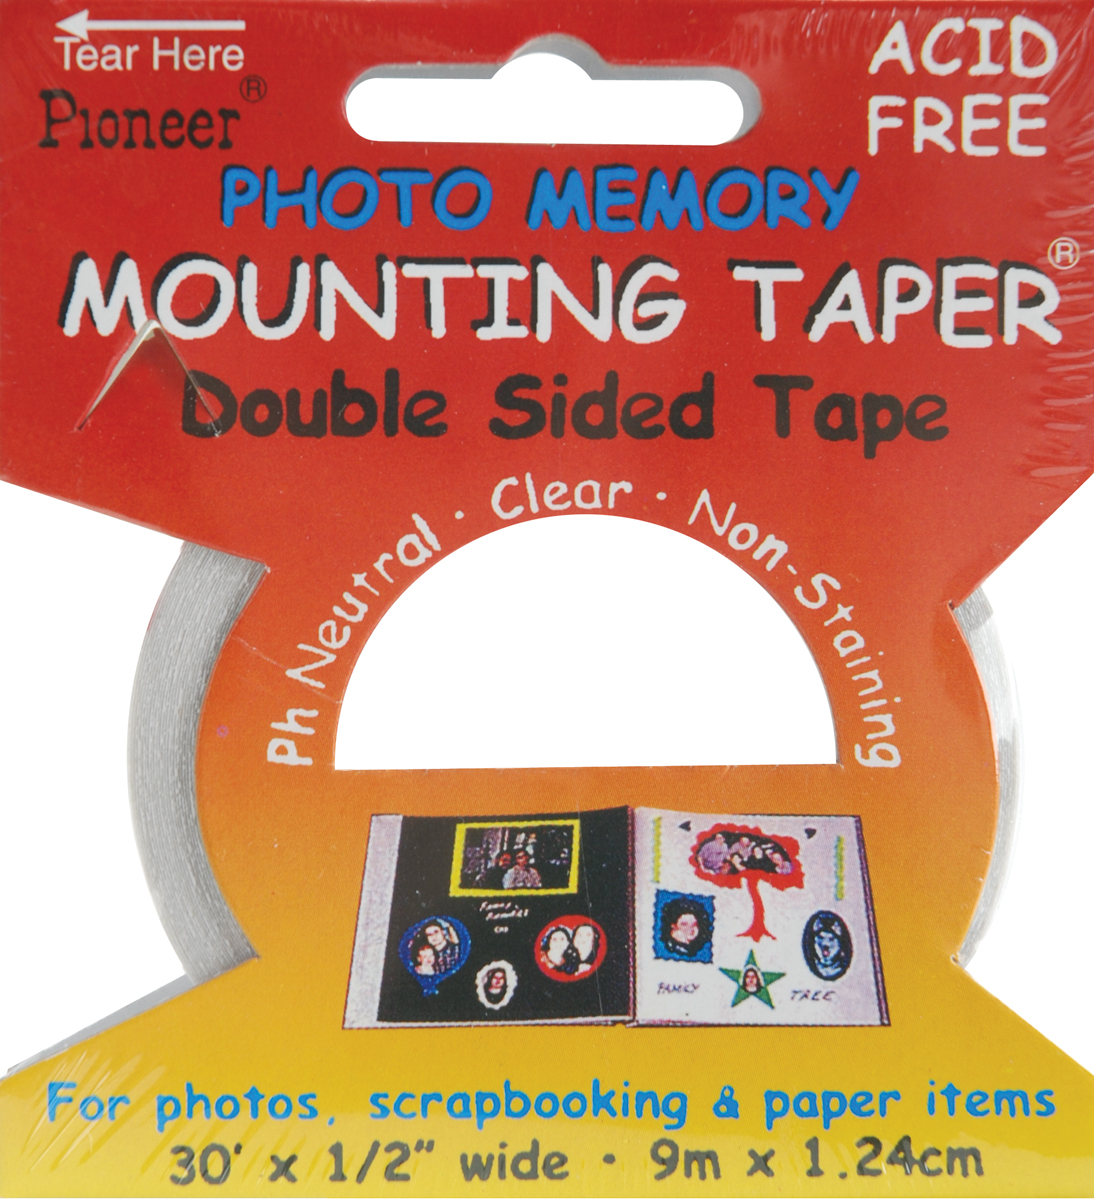 Pioneer Photo Memory Mounting Taper Multi-Colored